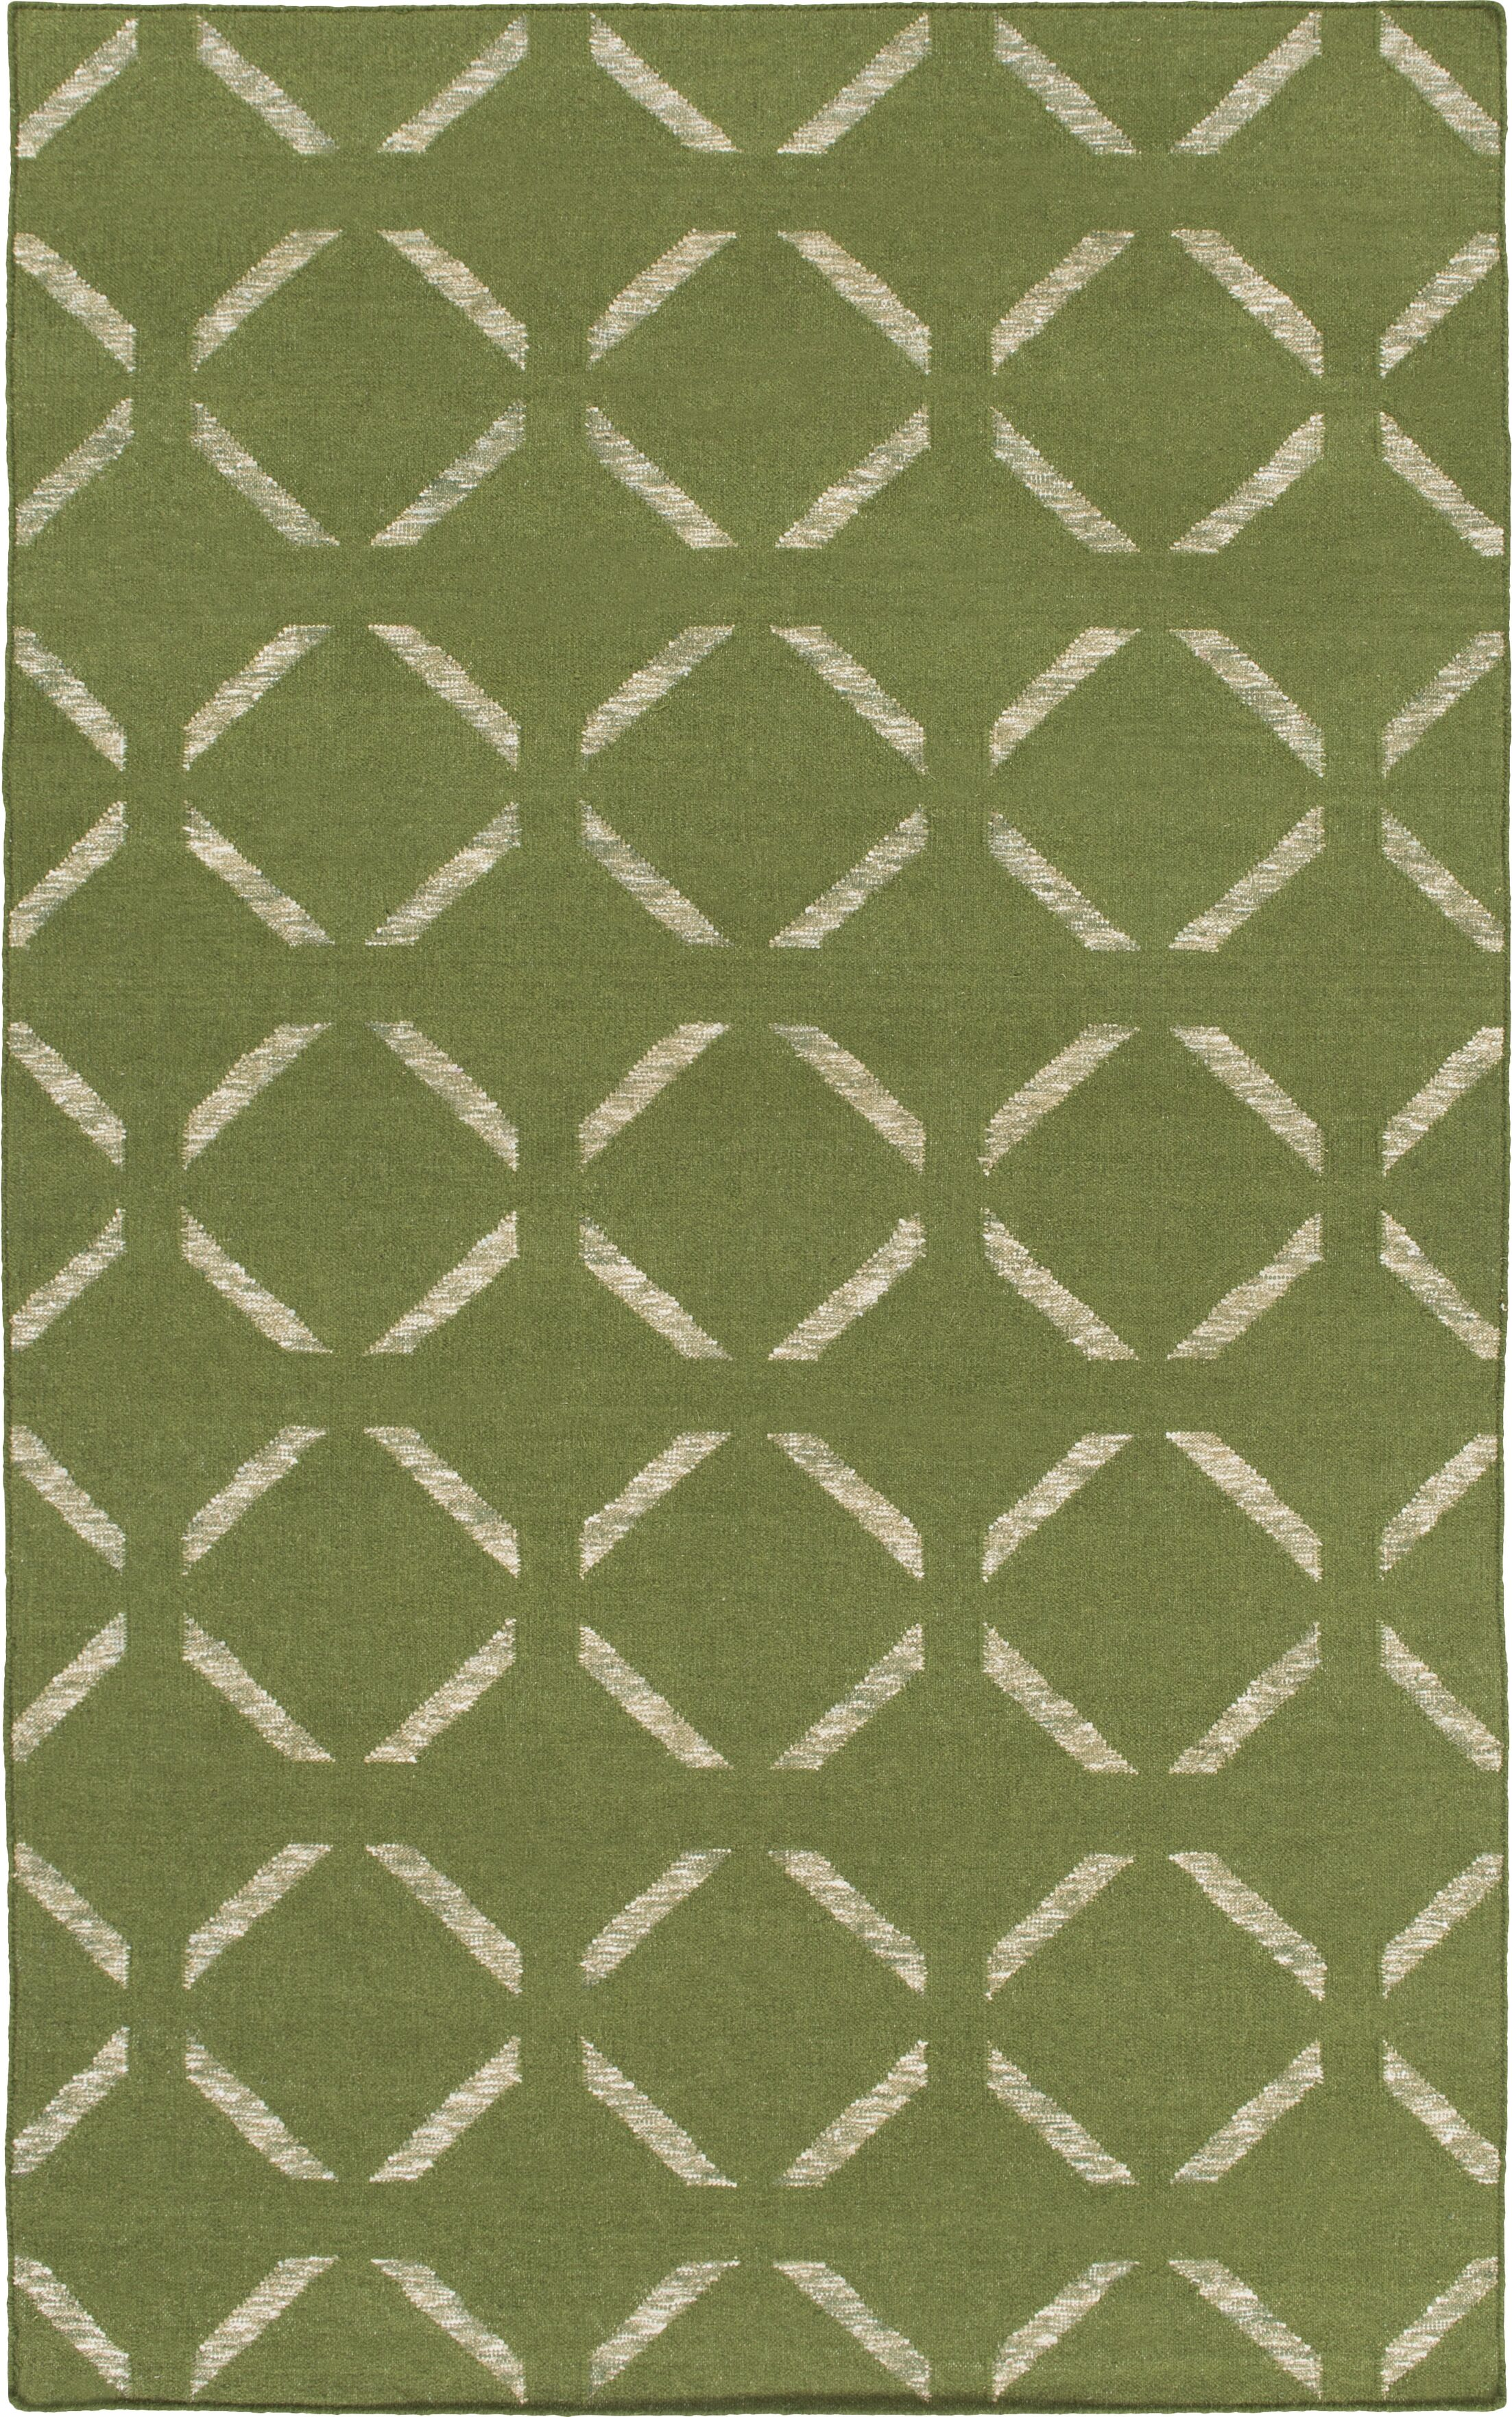 Hand-Woven Green Area Rug Rug Size: Rectangle 8' x 10'